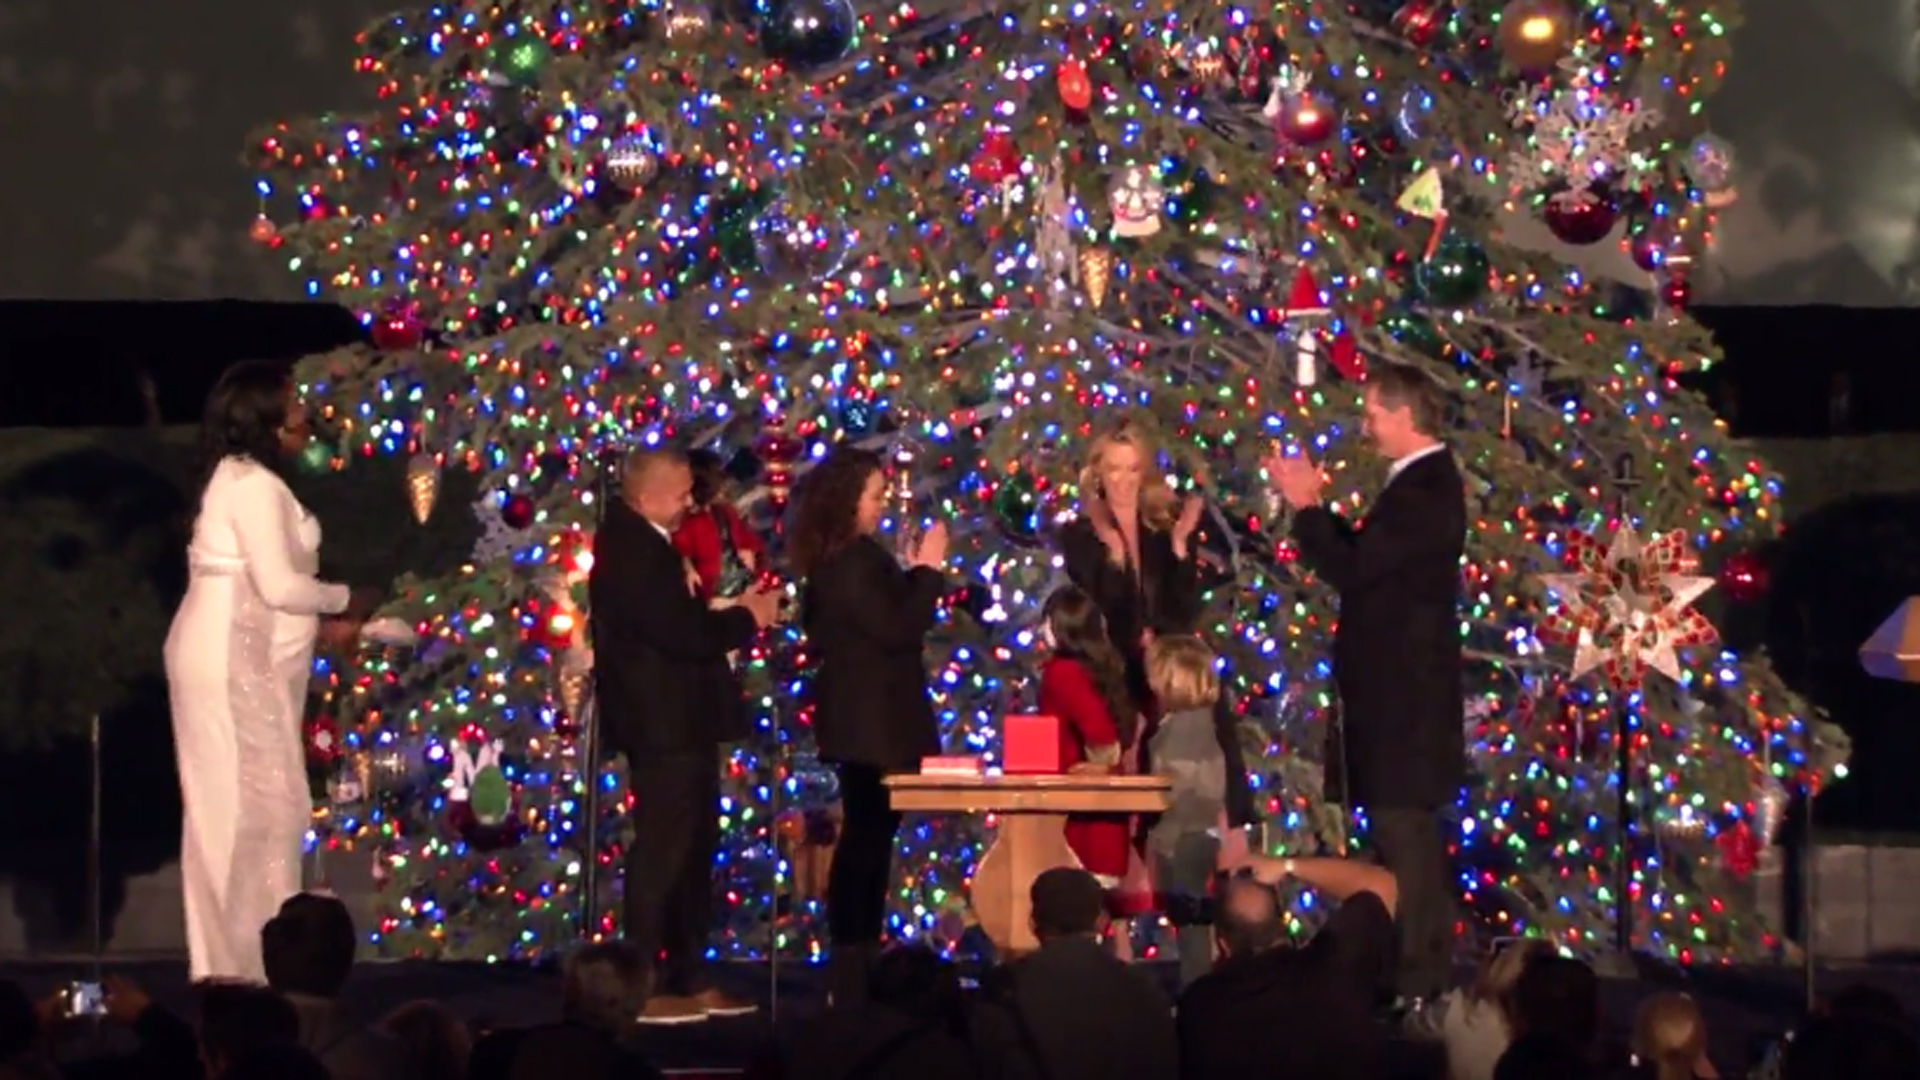 Gov. Gavin Newsom and First Partner Jennifer Siebel Newsom were joined by Nayeli Lemus, 10, of Gilroy in lighting the Capitol Christmas Tree on Dec. 6, 2019. (Credit: Office of the Governor)